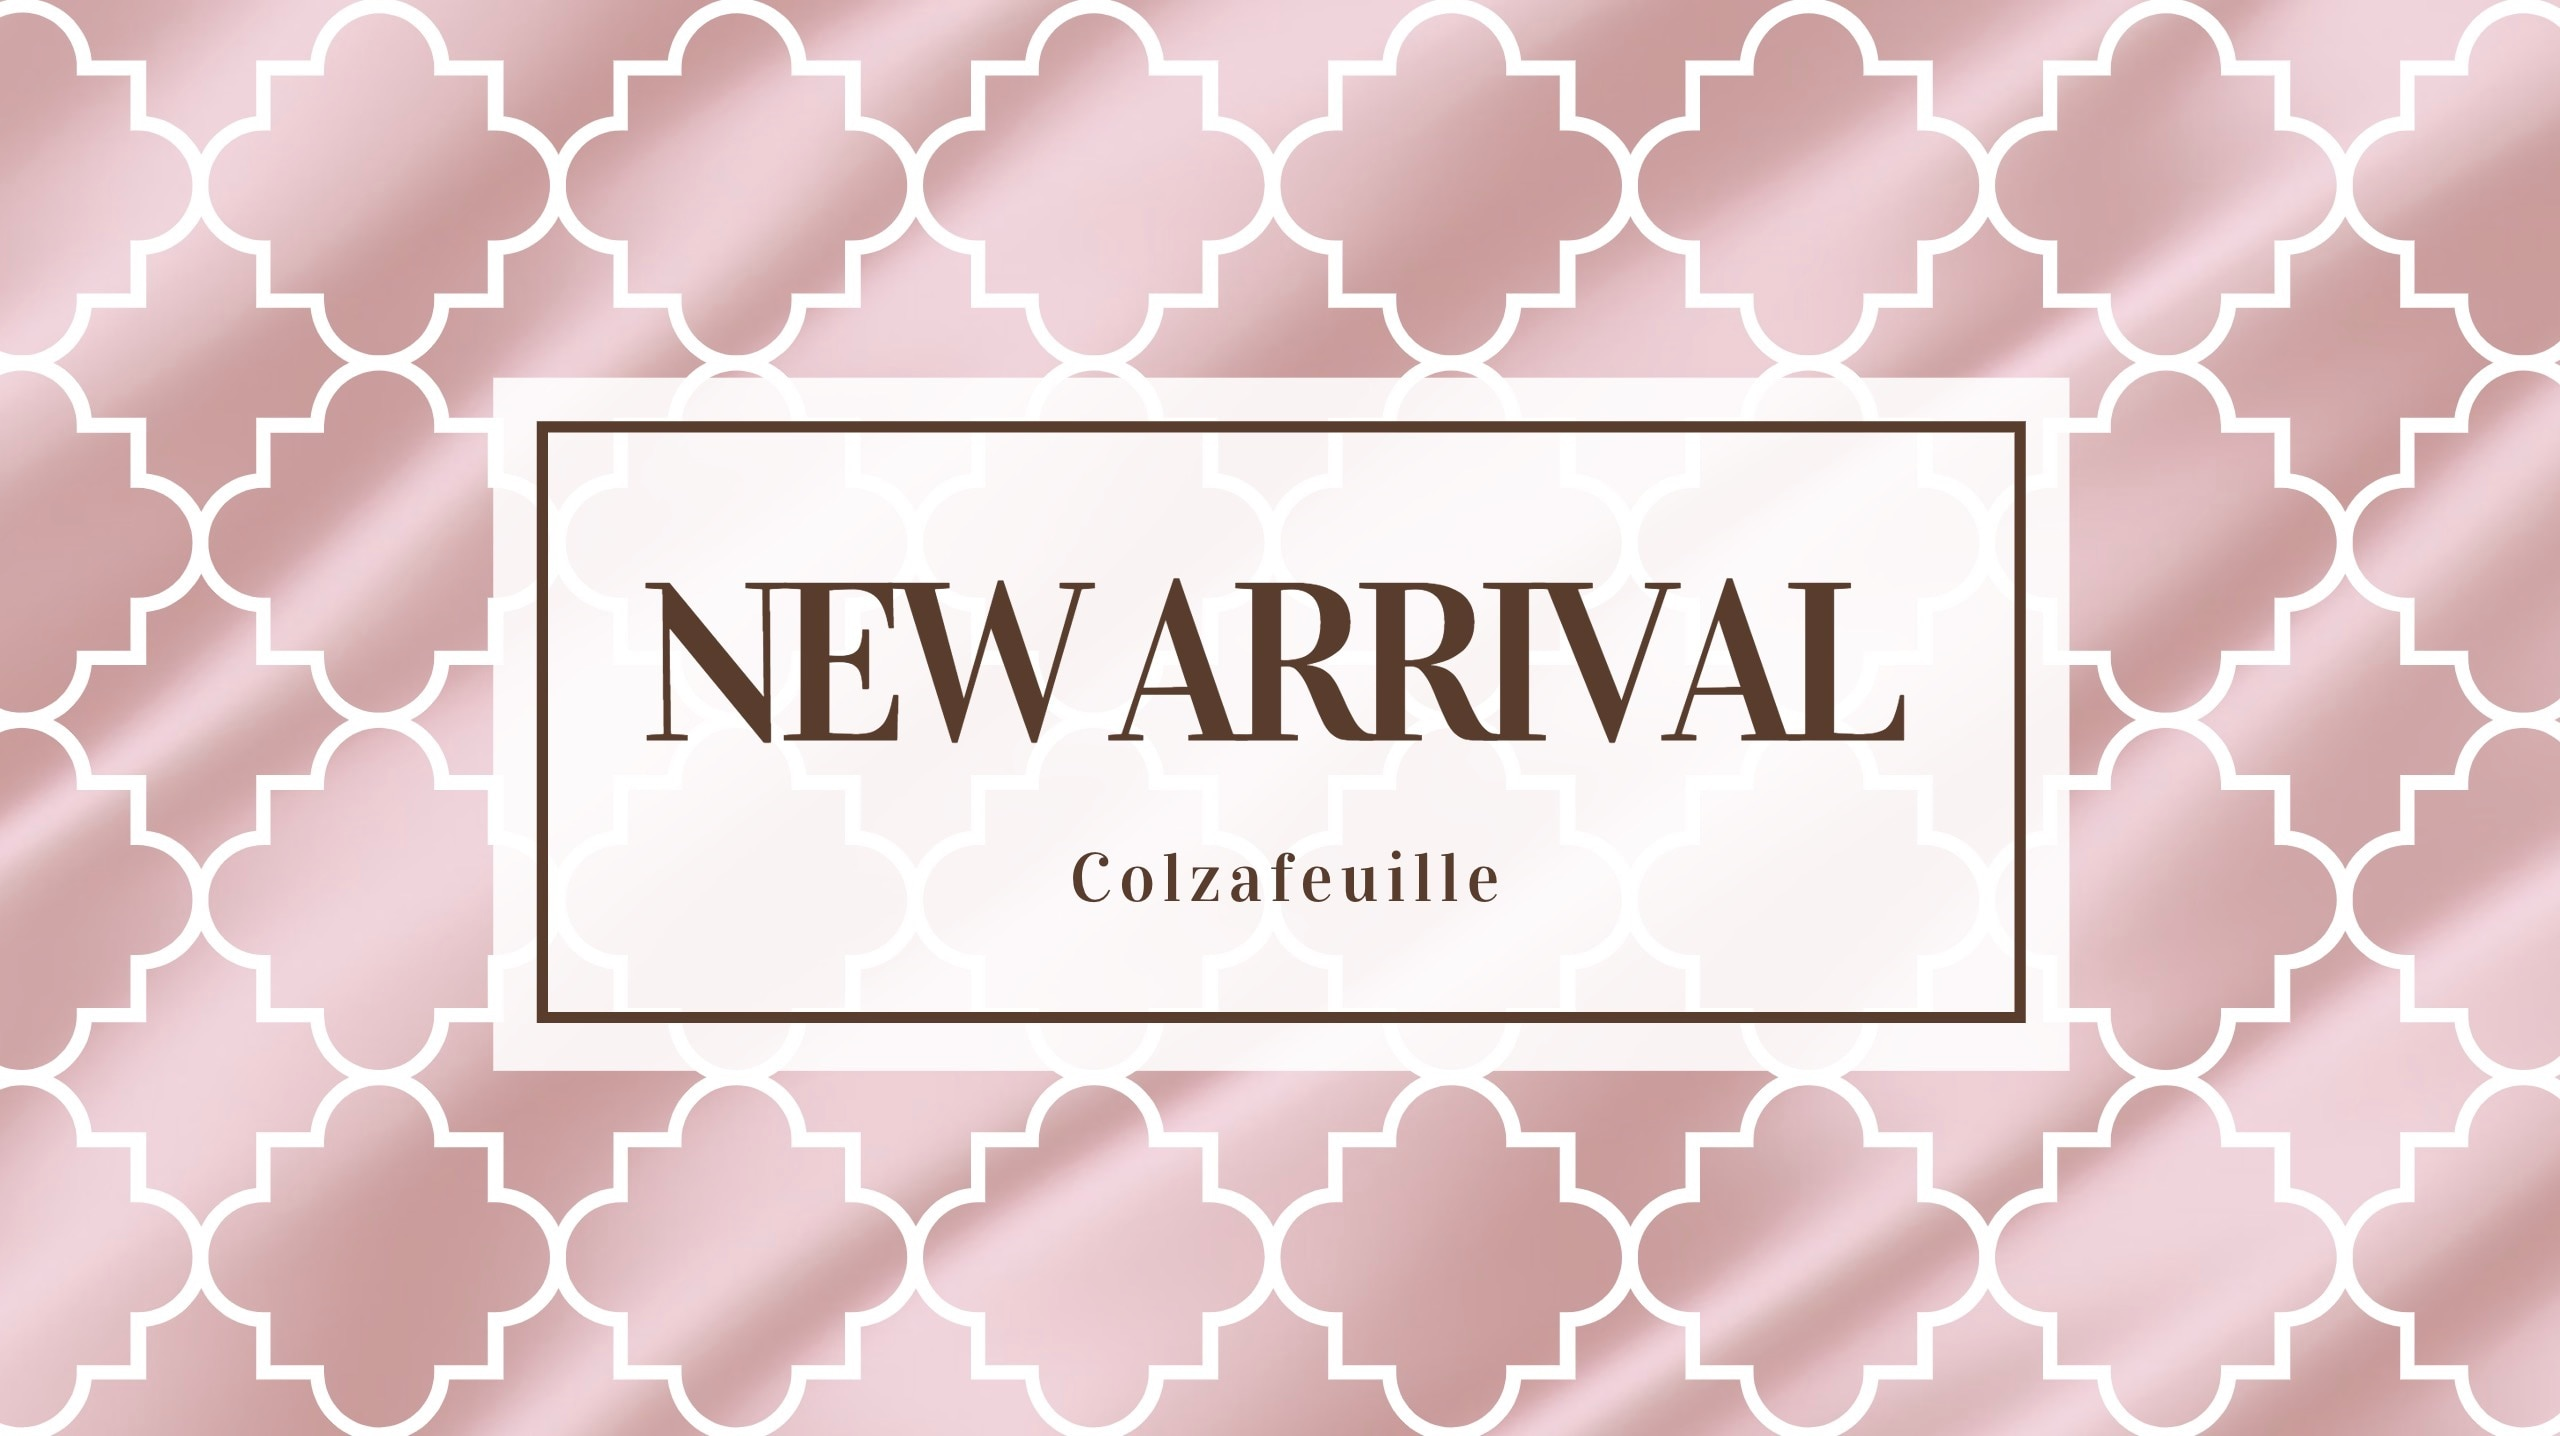 https://www.qoo10.jp/shop/colzafeuille?minishop_bar_onoff=Y&keyword_hist=&sell_coupon_cust_no=0ZwBQYzkBNBa9uvTvwVKkw%3D%3D&SellerCooponDisplay=Y&sell_cust_no=0ZwBQYzkBNBa9uvTvwVKkw%3D%3D&theme_sid=0&page_type=&global_yn=N&frame_id=&qid=0&search_mode=&fbidx=-1&brandno=&group_code=&gdlc_cd=&gdmc_cd=&gdsc_cd=&delivery_group_no=&sortType=SORT_GD_NO&dispType=UIG4&flt_pri_idx=&filterDelivery=NNNNNANNNN&search_global_yn=N&basis=&shipFromNation=&shipto=ALL&SearchNationCode=&is_research_yn=Y&hid_keyword=&video_goods_yn=&coupon_filter_no=&gd_type=&drugs_type=&promotion_yn=&priceMin=&priceMax=&curPage=1&pageSize=60&partial=on&brandno=&paging_value=1